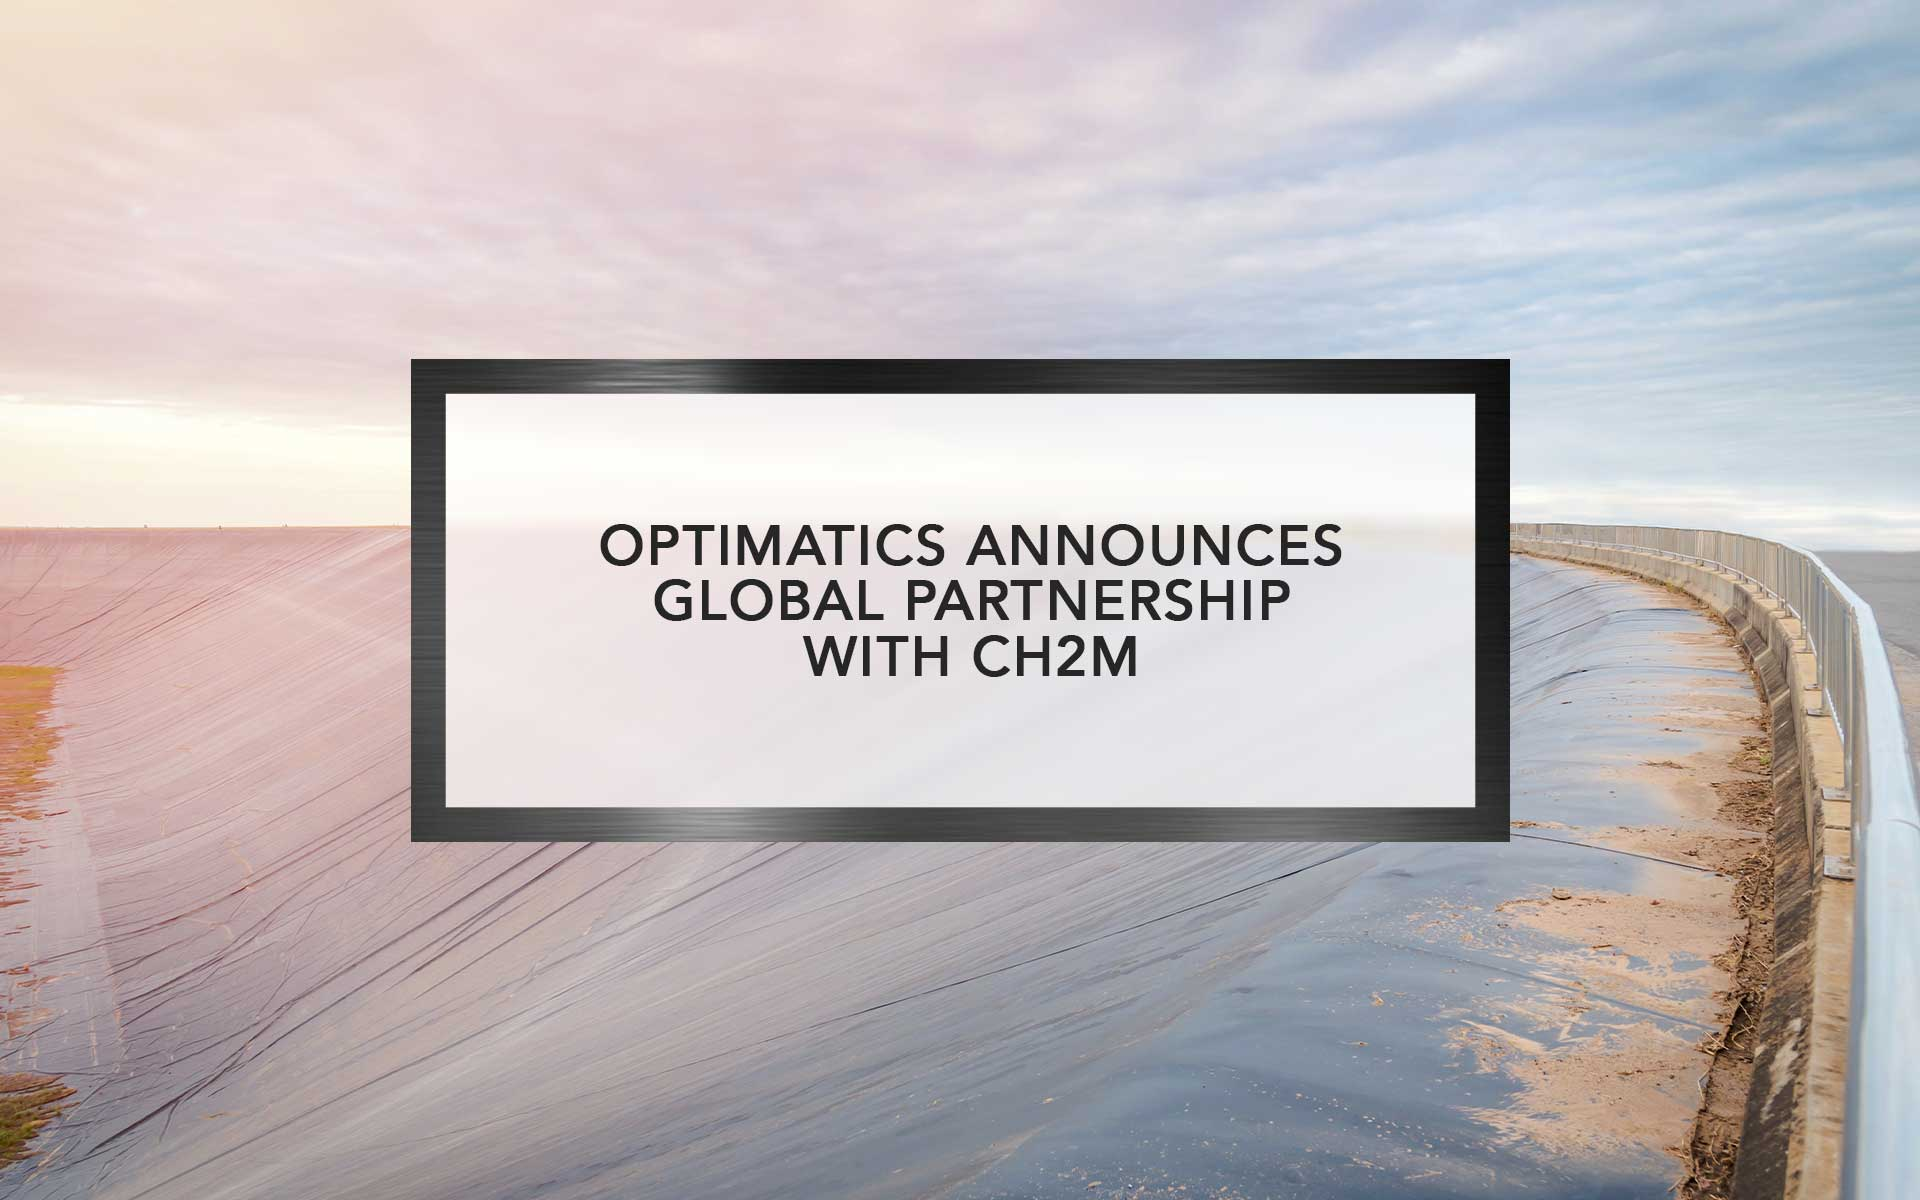 Optimatics Announces Global Partnership with CH2M